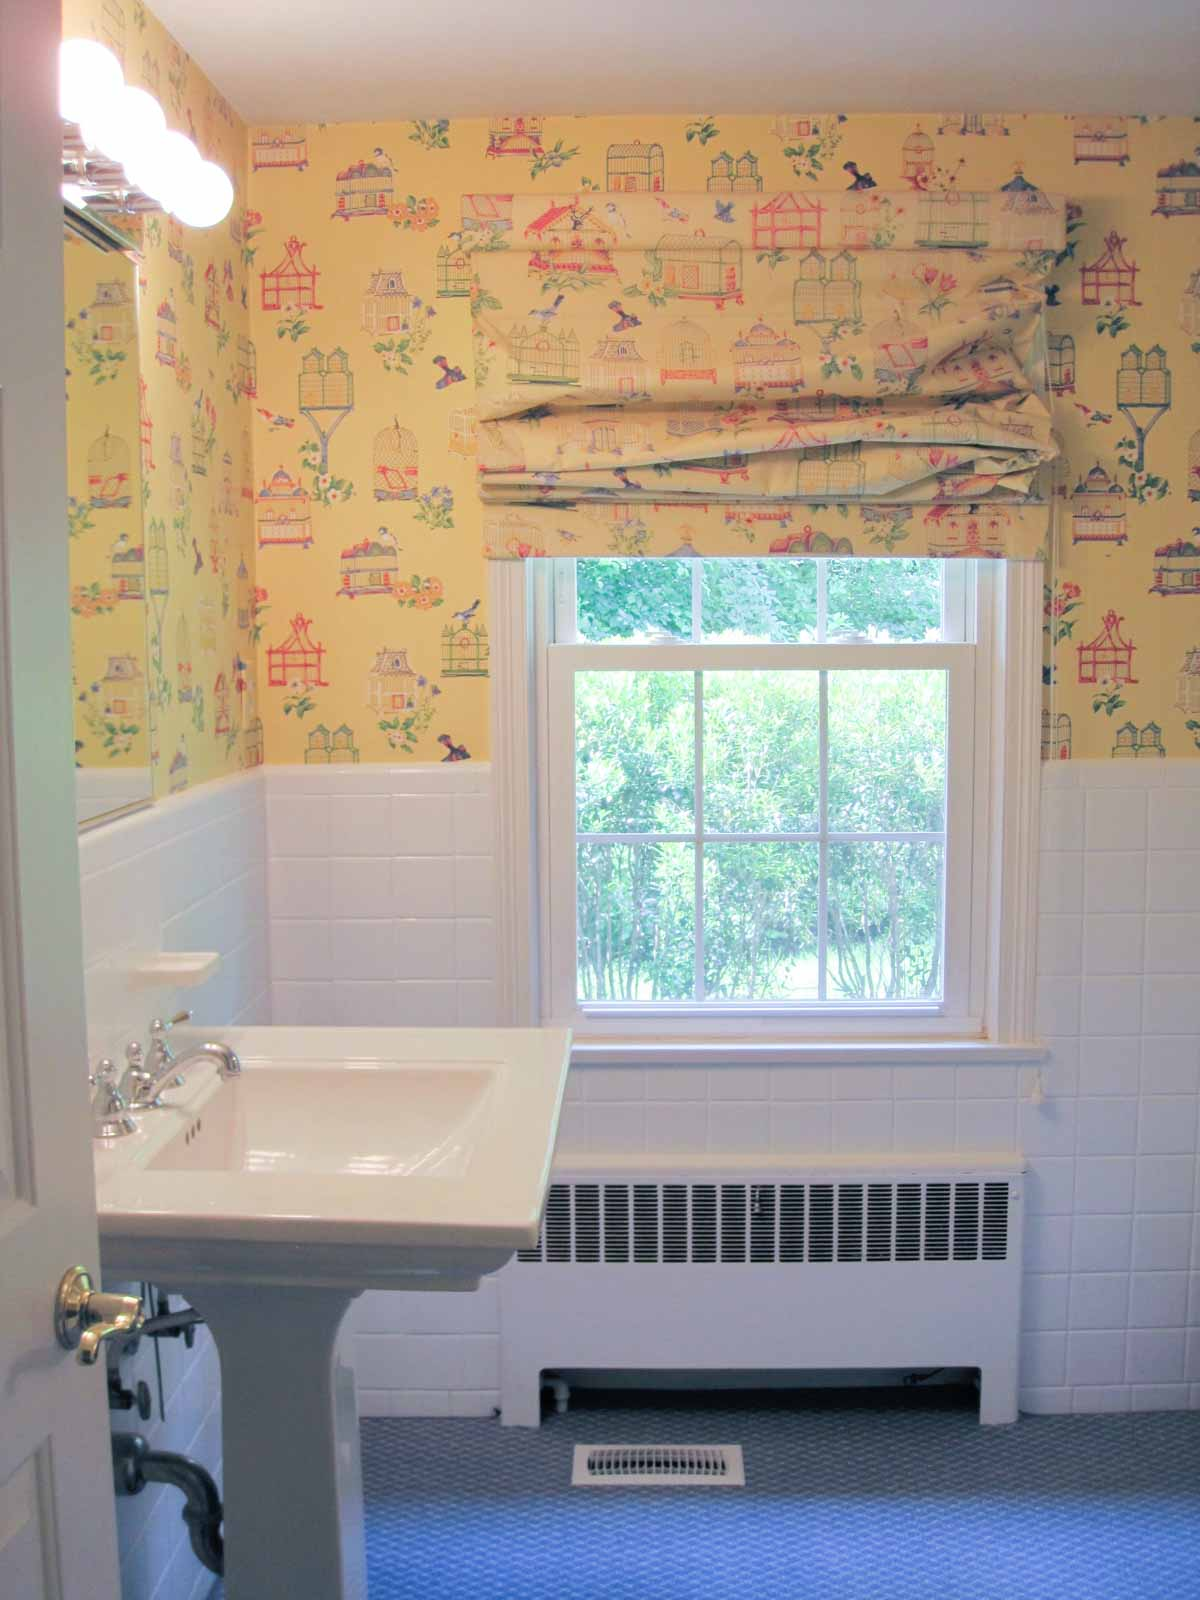 Home remodel: Our powder room before remodeling!